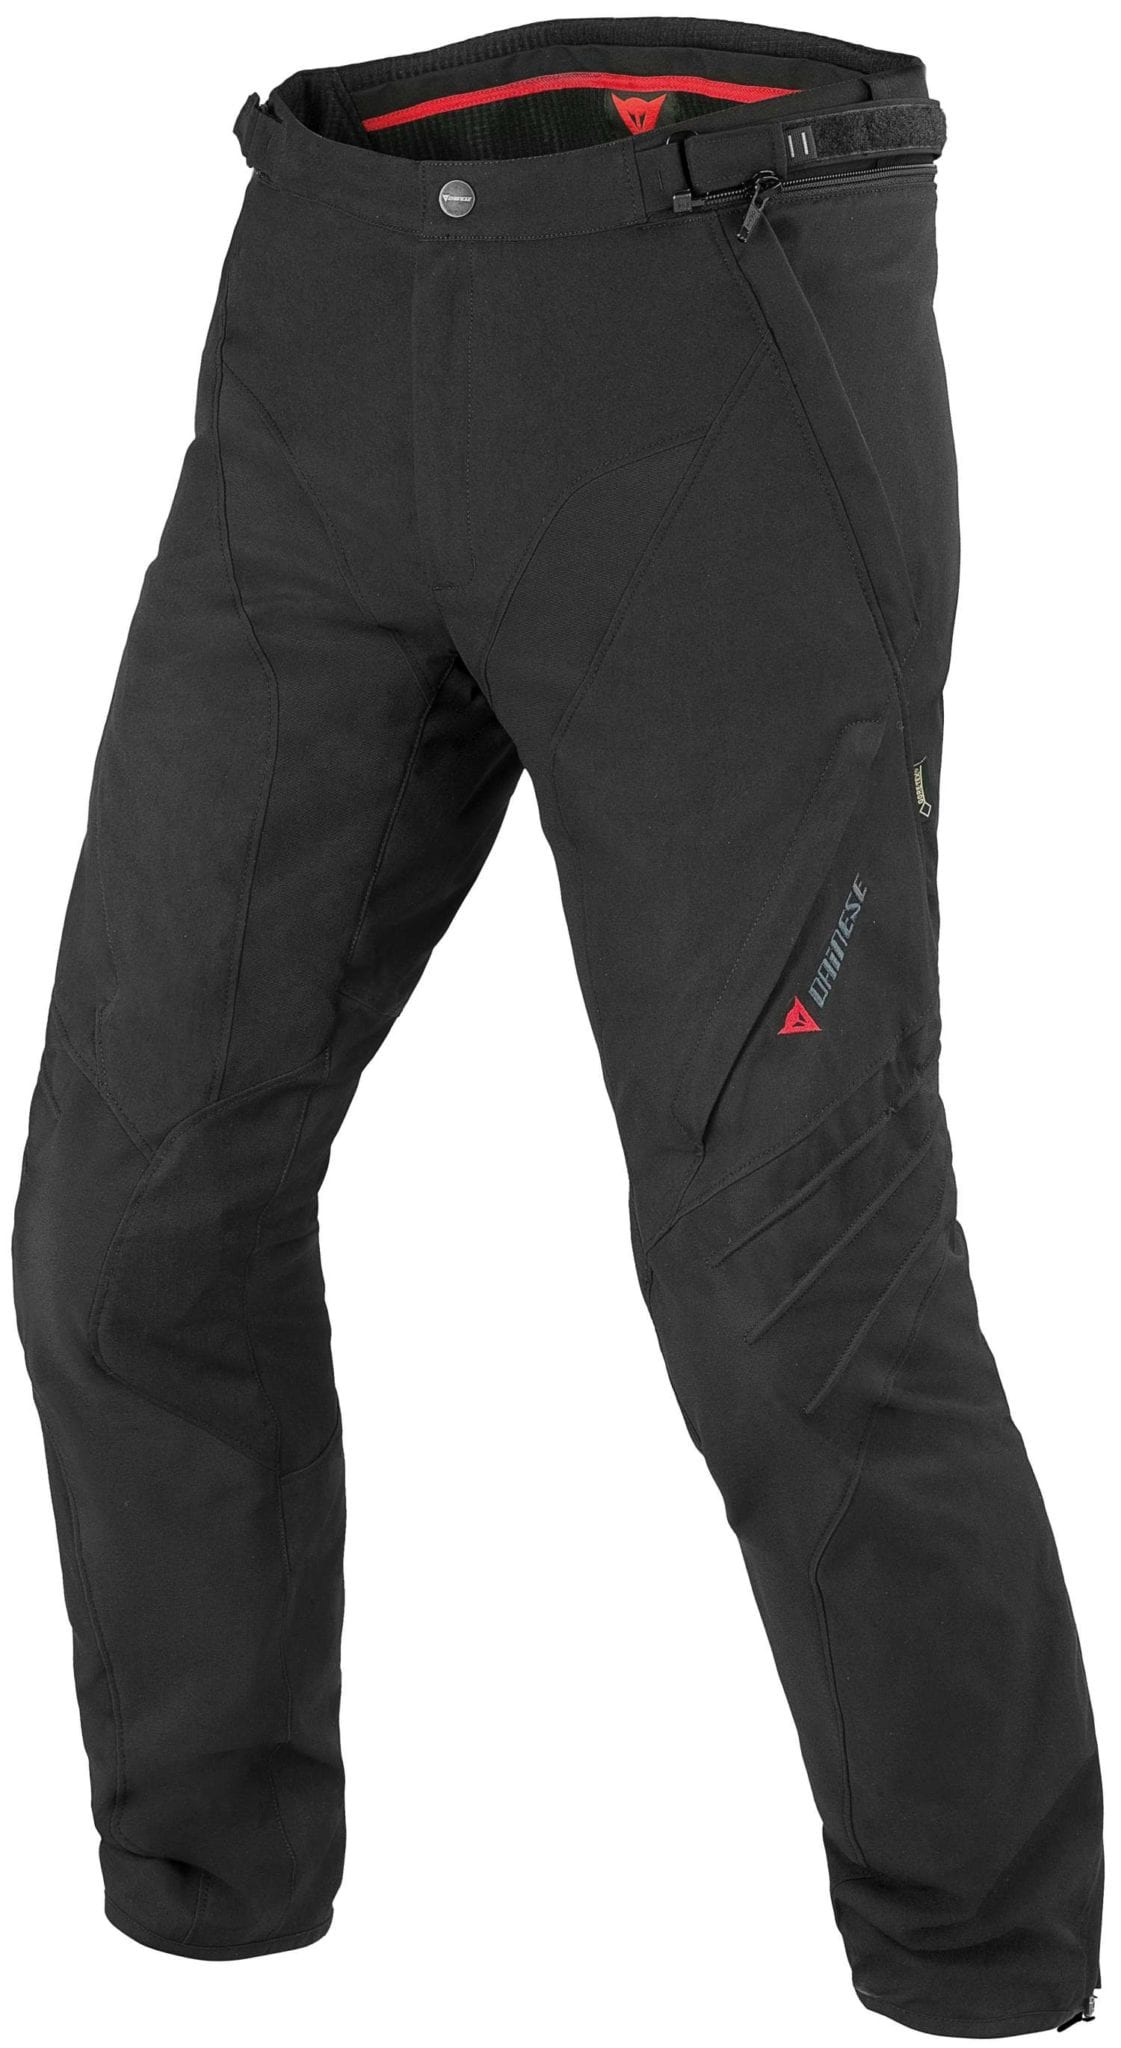 Dainese-textile-trousers